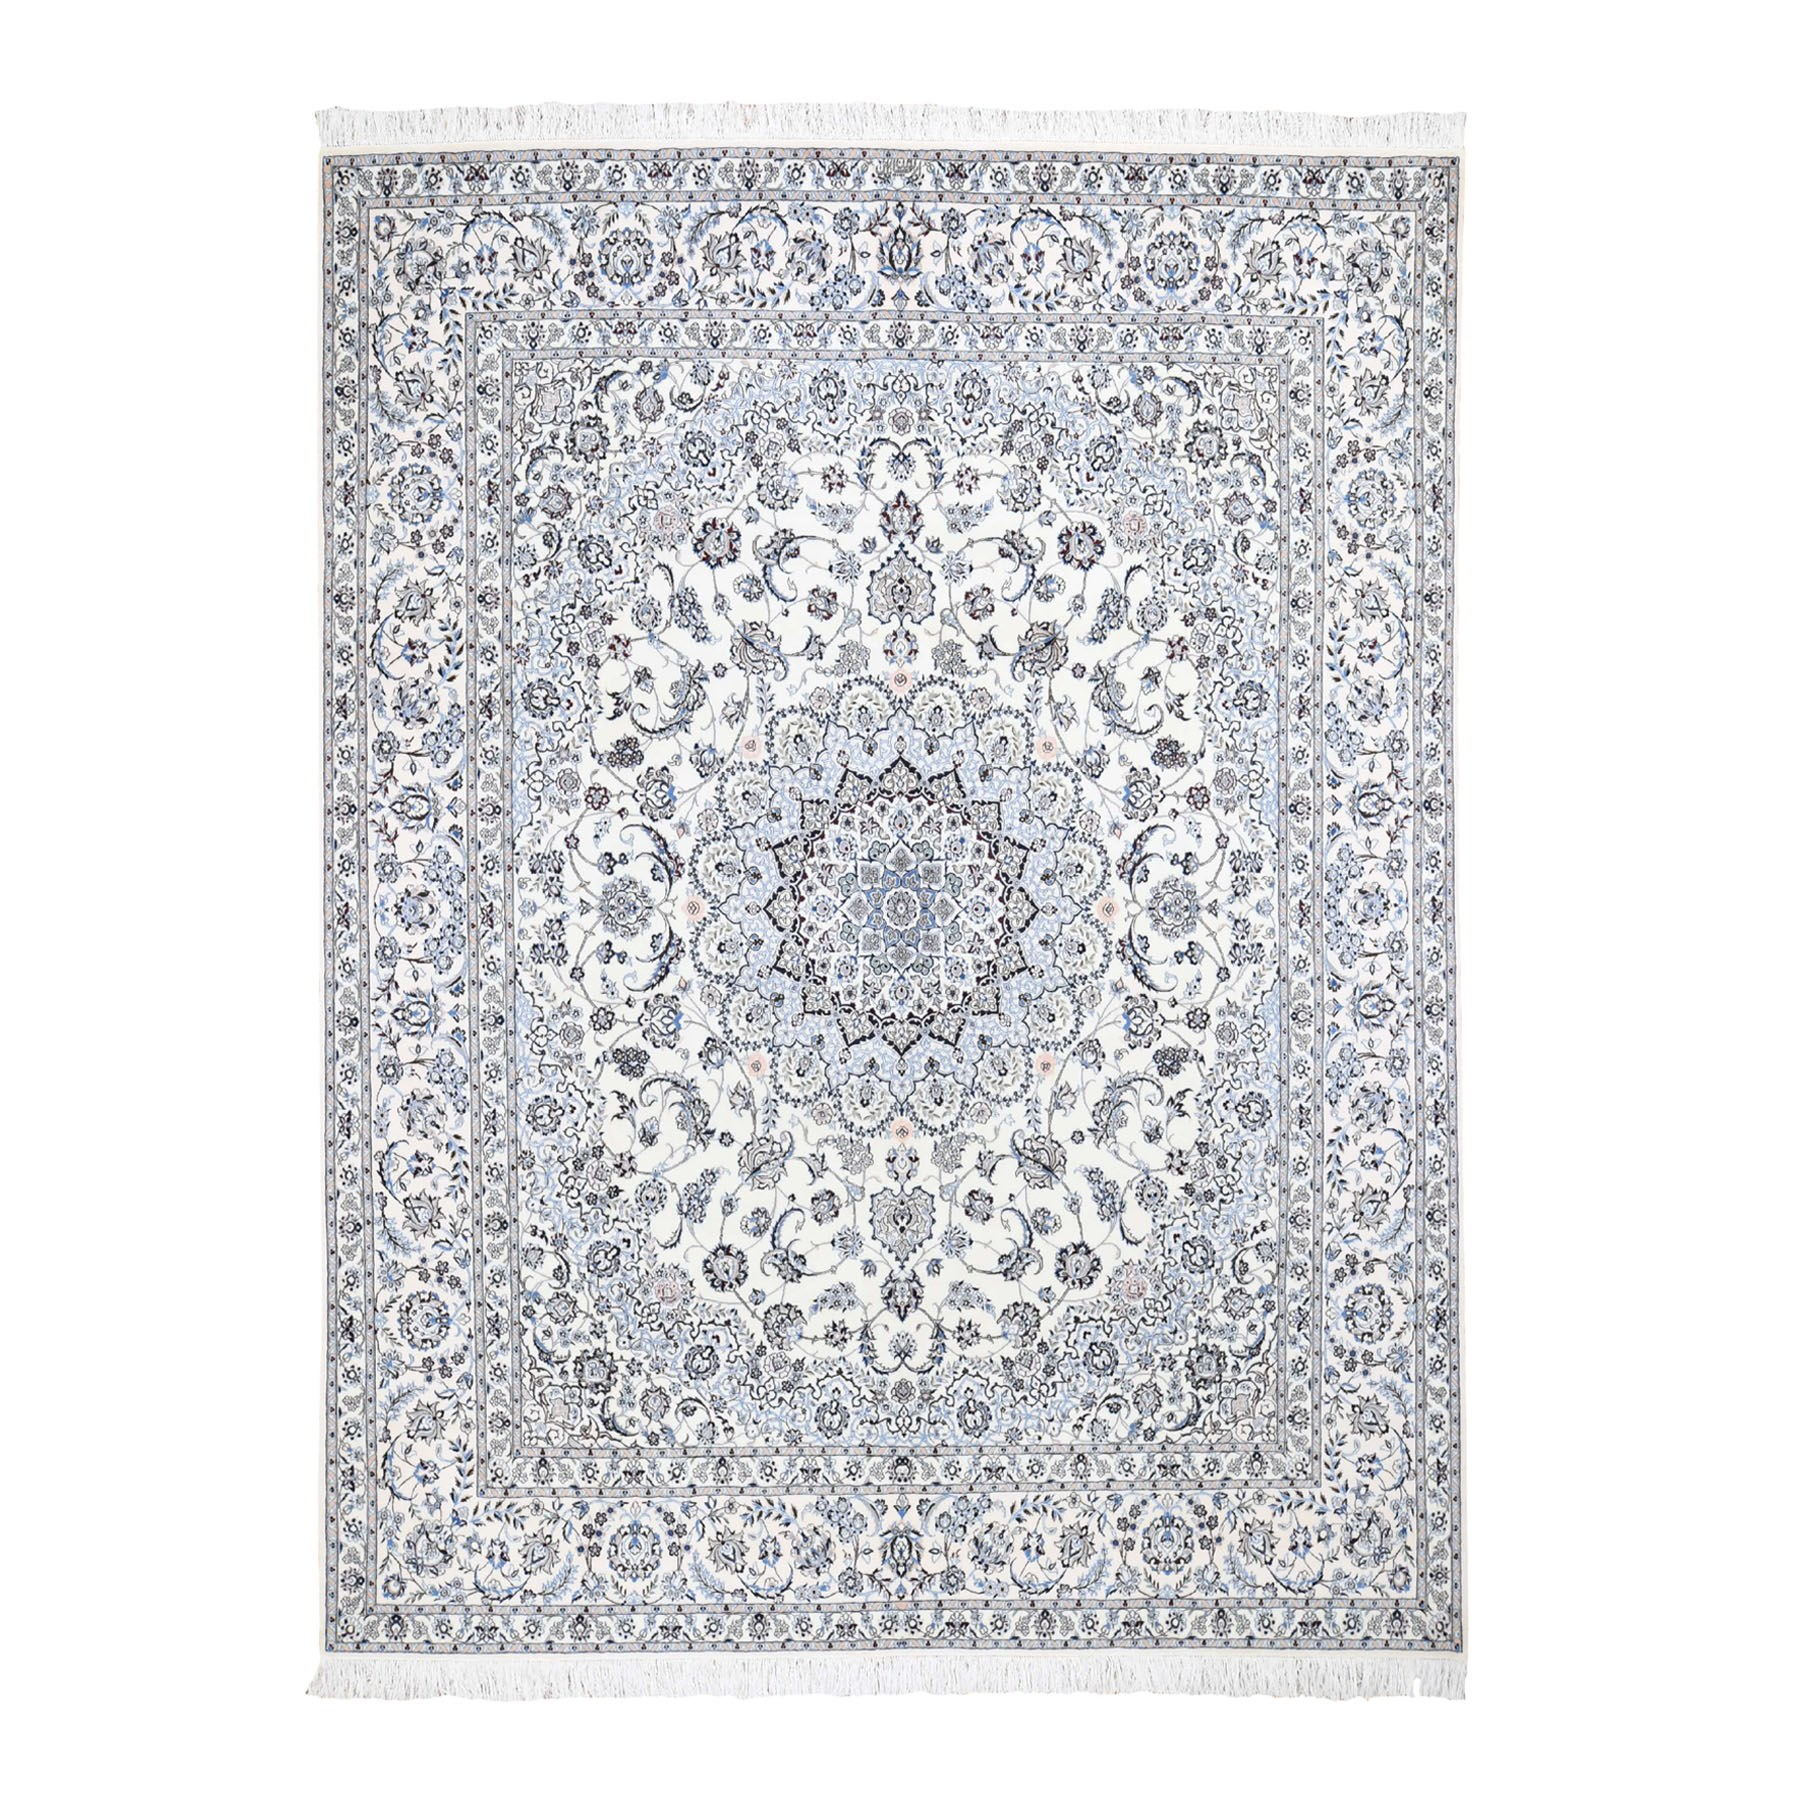 Pirniakan Collection Hand Knotted Ivory Rug No: 0196394